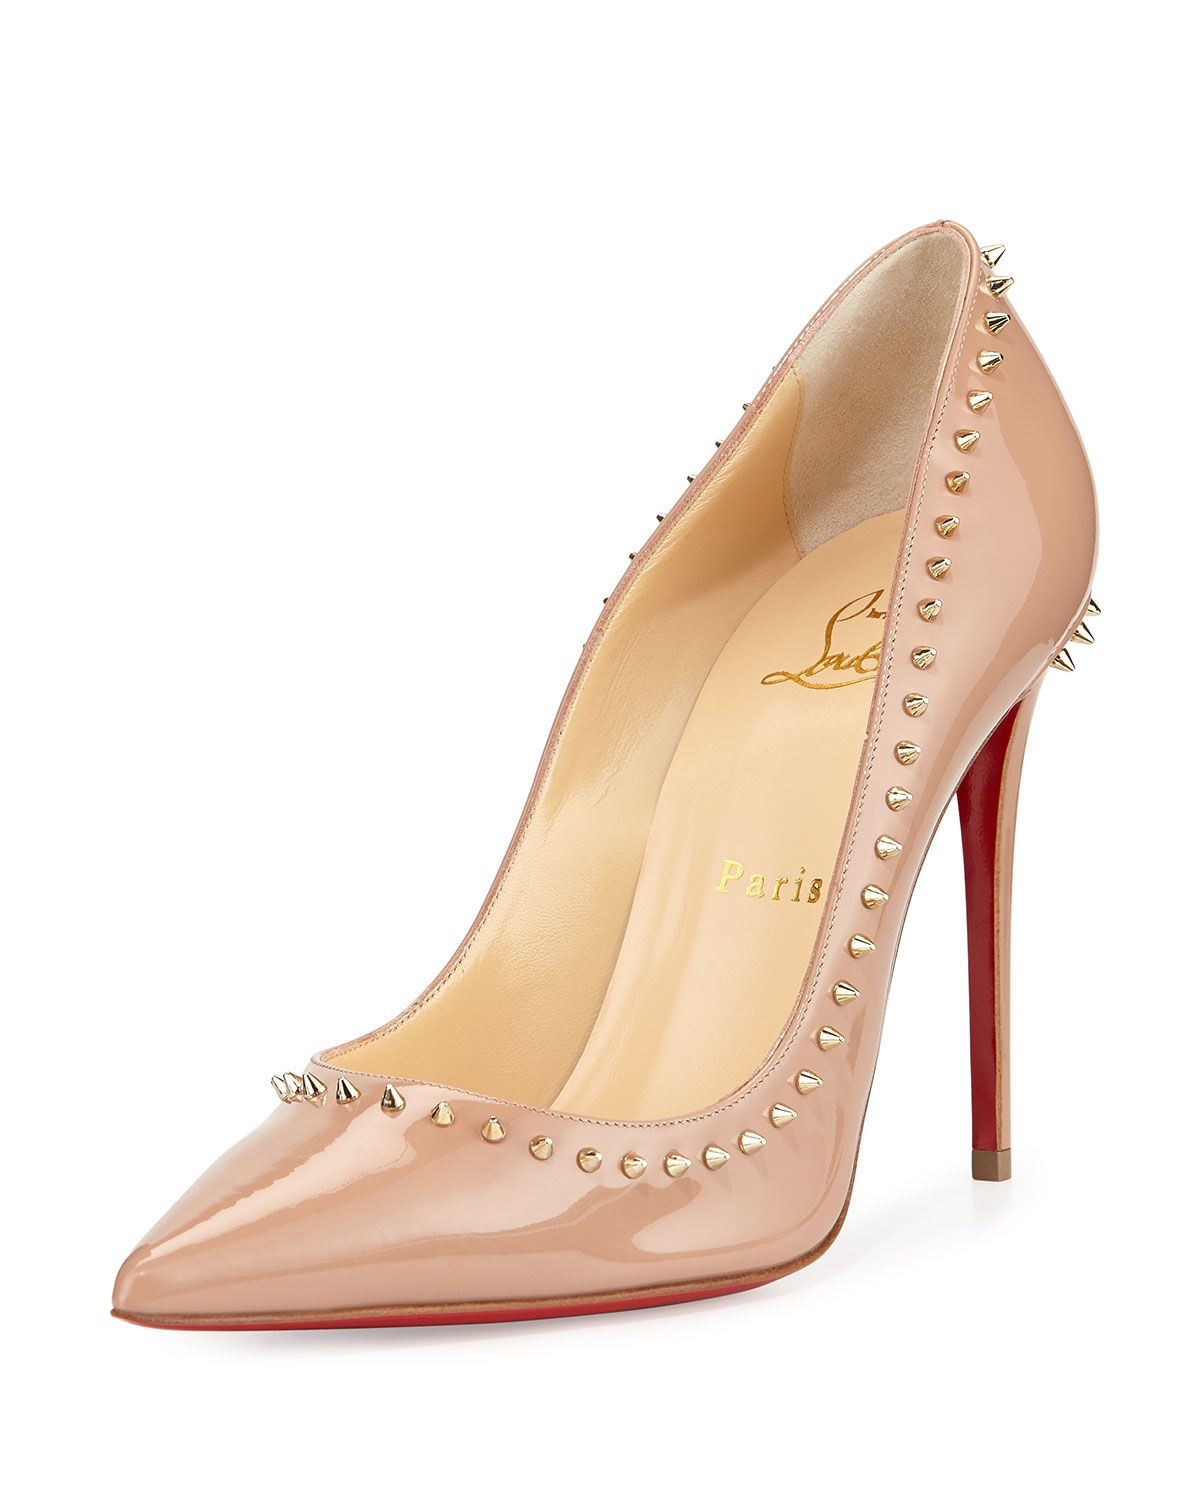 4b8e057a45a Anjalina Spike Patent Red Sole Pump Nude/Golden in 2019 | *Apparel ...